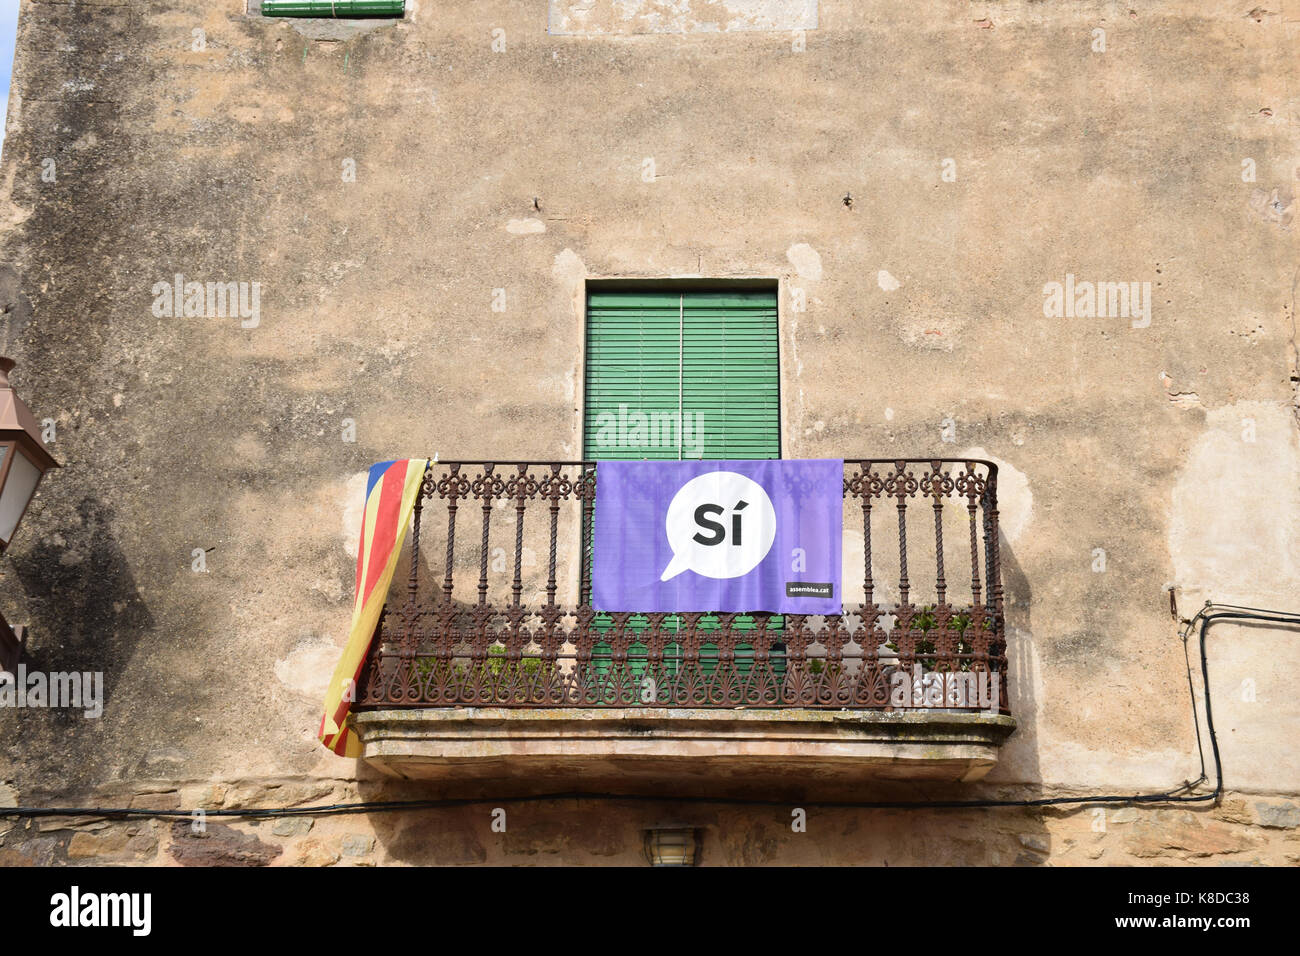 Catalonia, Spain Sep 2017. Pertallada. On 1 October Catalans will go to the polls to vote in a referendum on whether - Stock Image